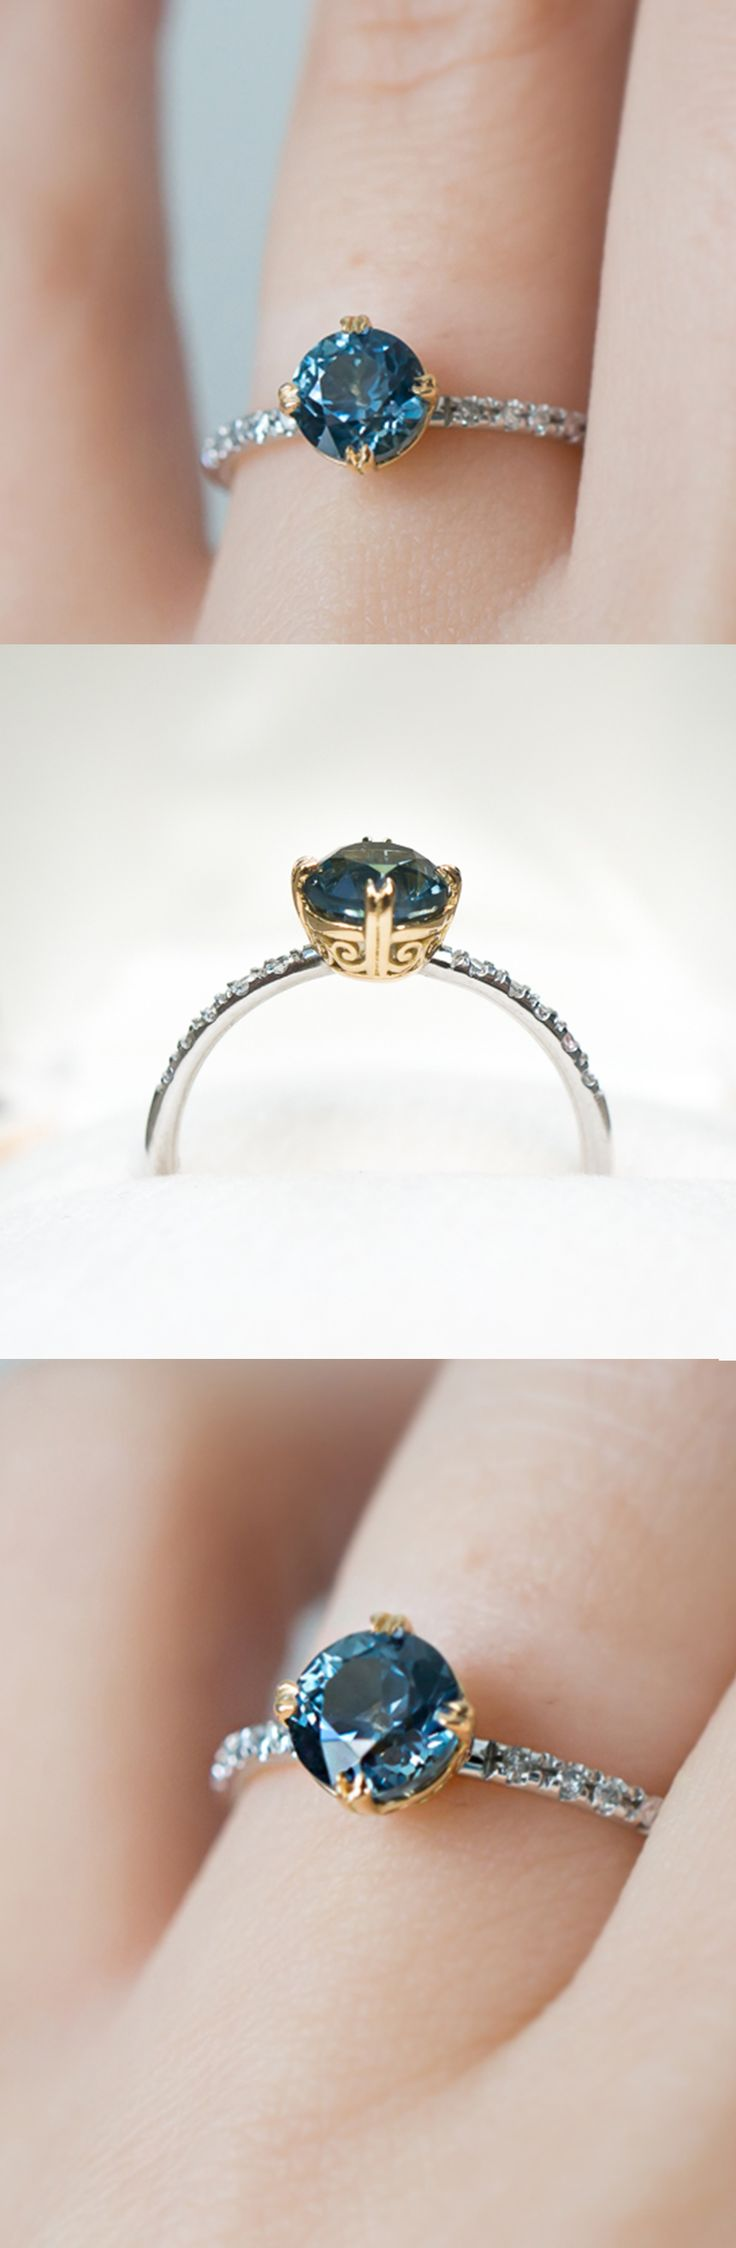 Gorgeous antique open-work details on this Sapphire ring by S. Kind & Co.